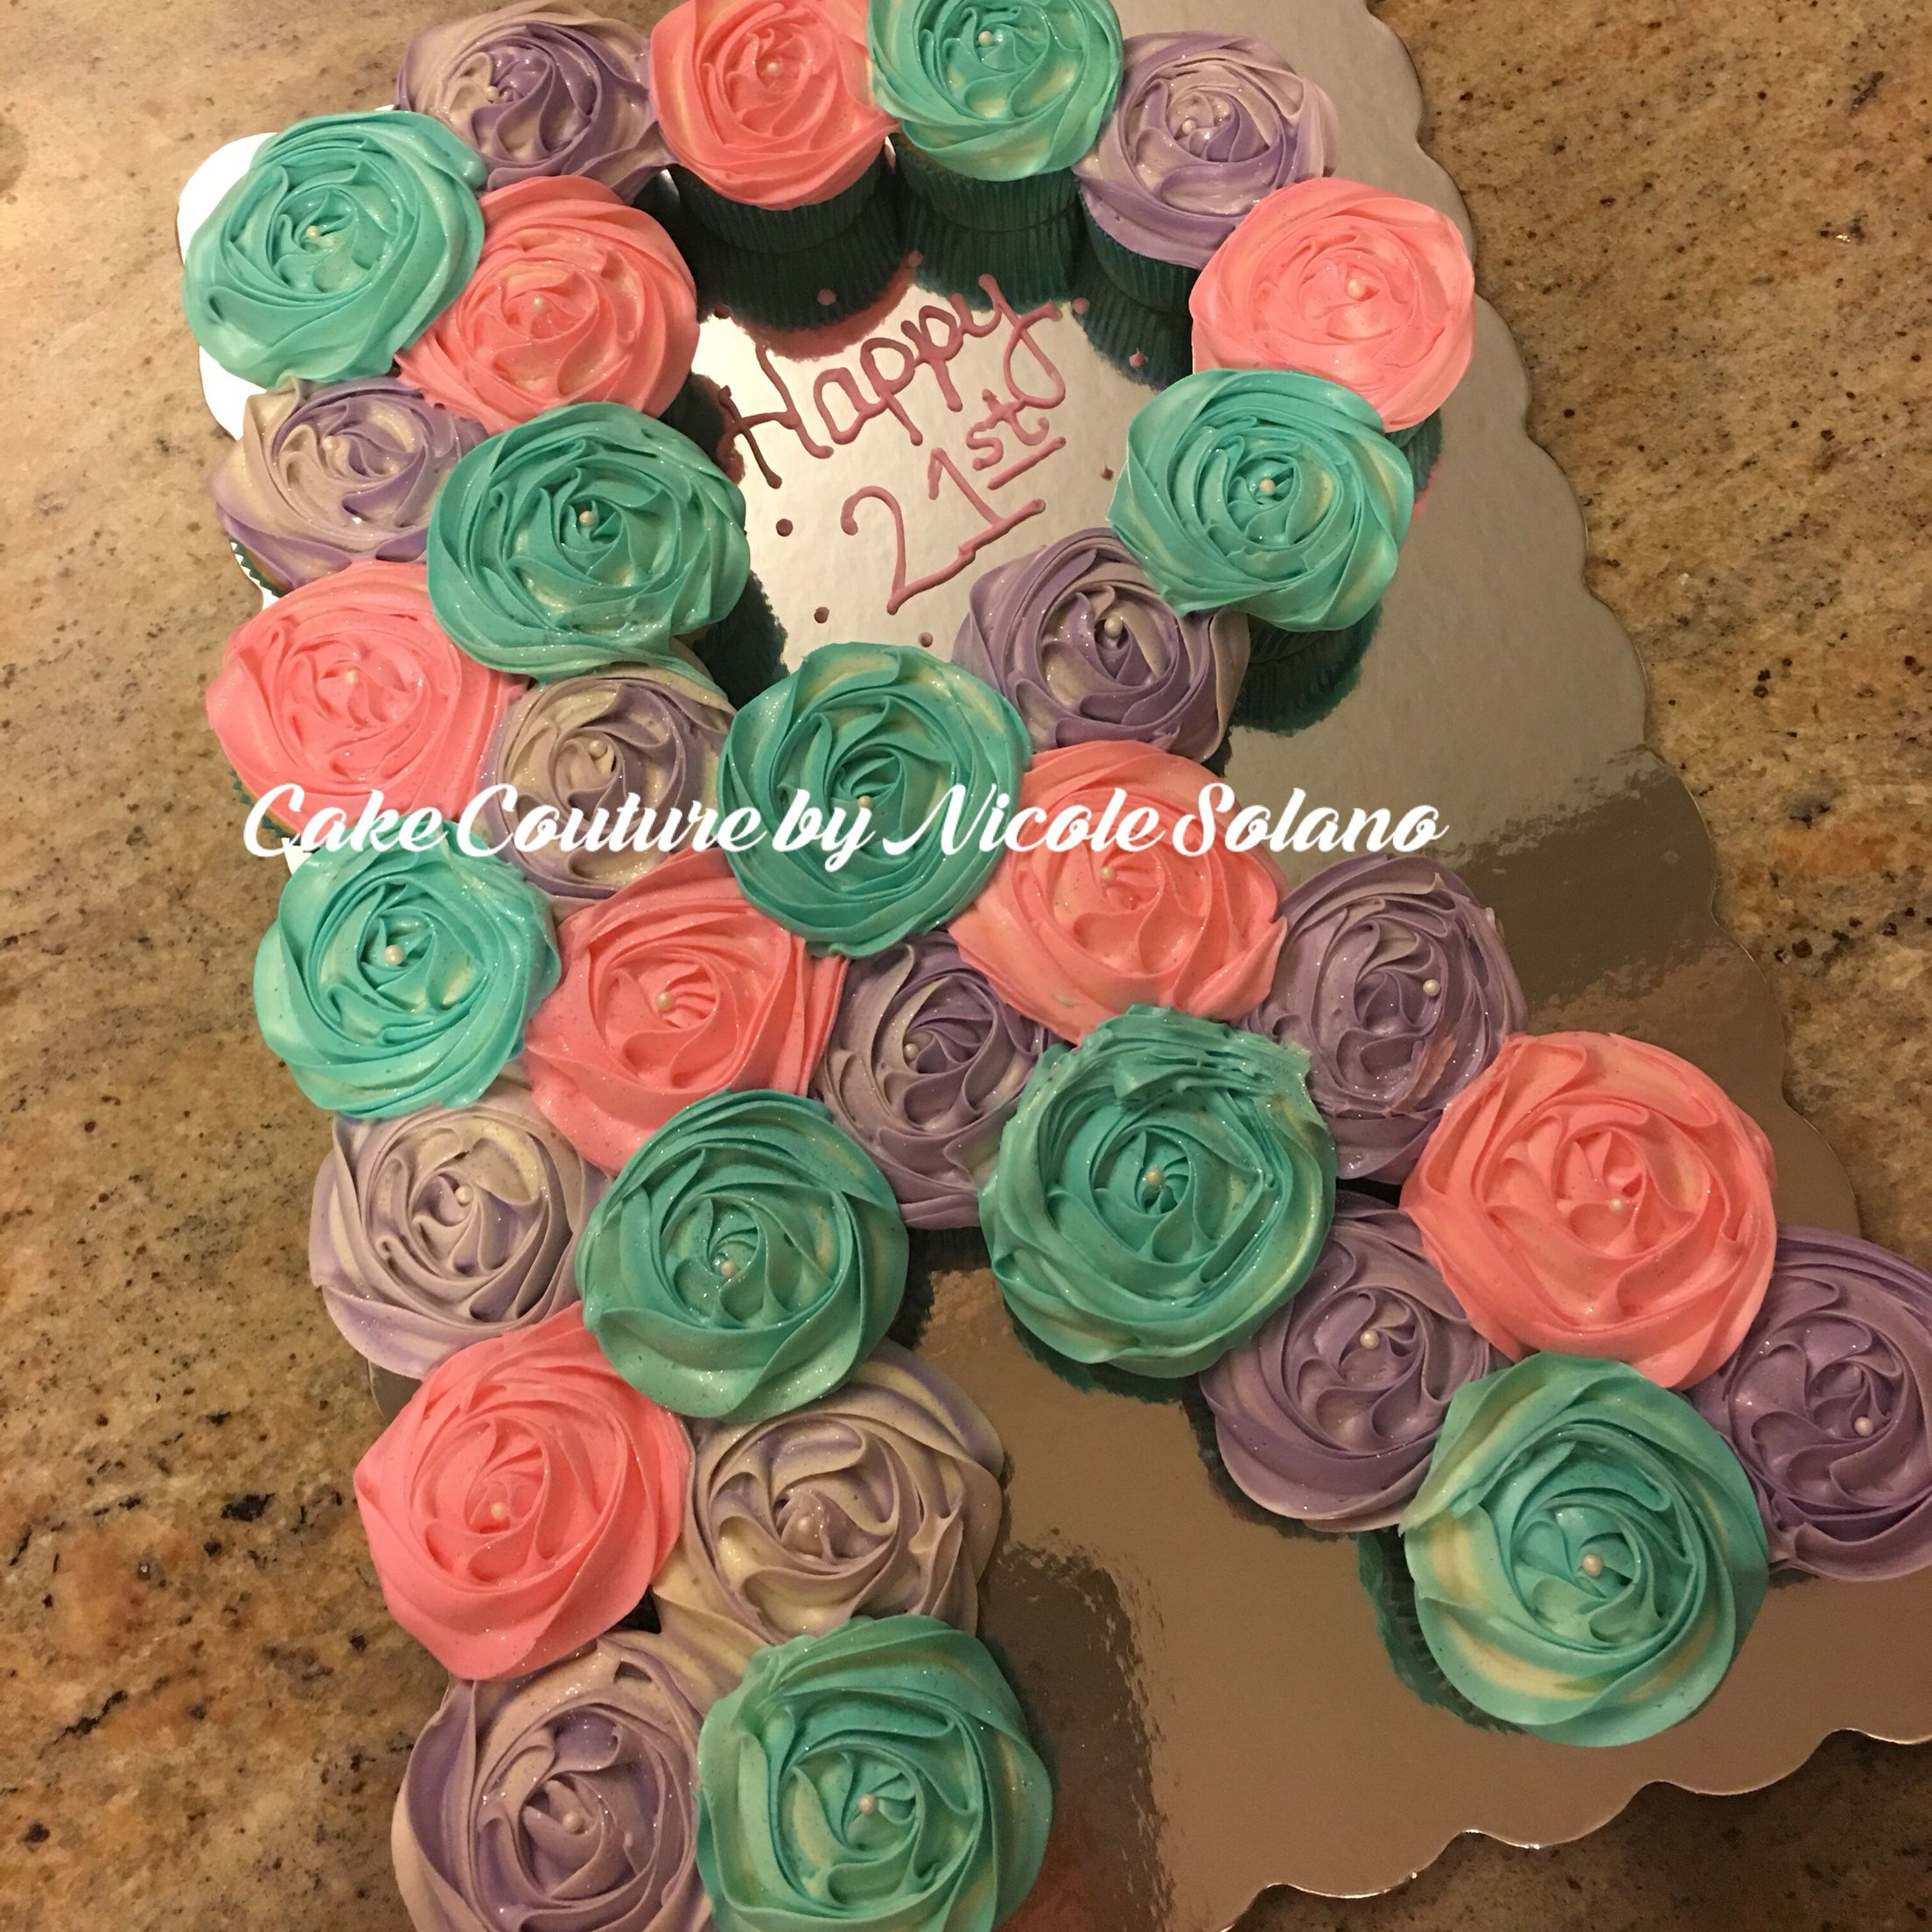 r monogram letter shaped pull apart cake made out of cupcakes